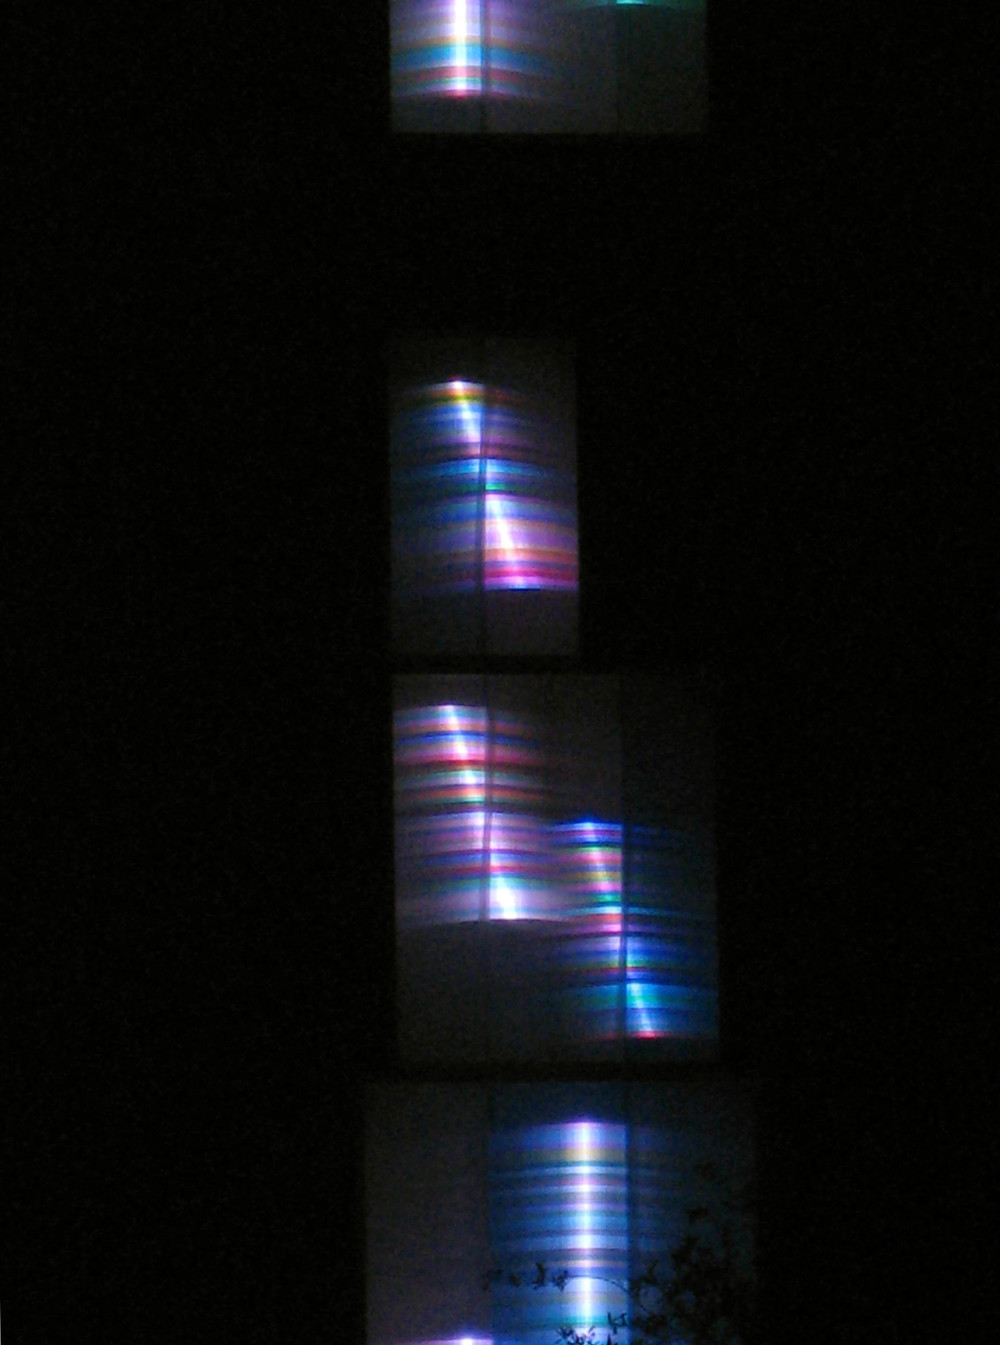 Horizon Horizon, Skypoint - Adjacent to Tampa Museum of Art , Public Art,  Florida 2007- Two - 100' x 11' x 1' Greenhouse Polycarbonates, Metal,  Programmed LED Light